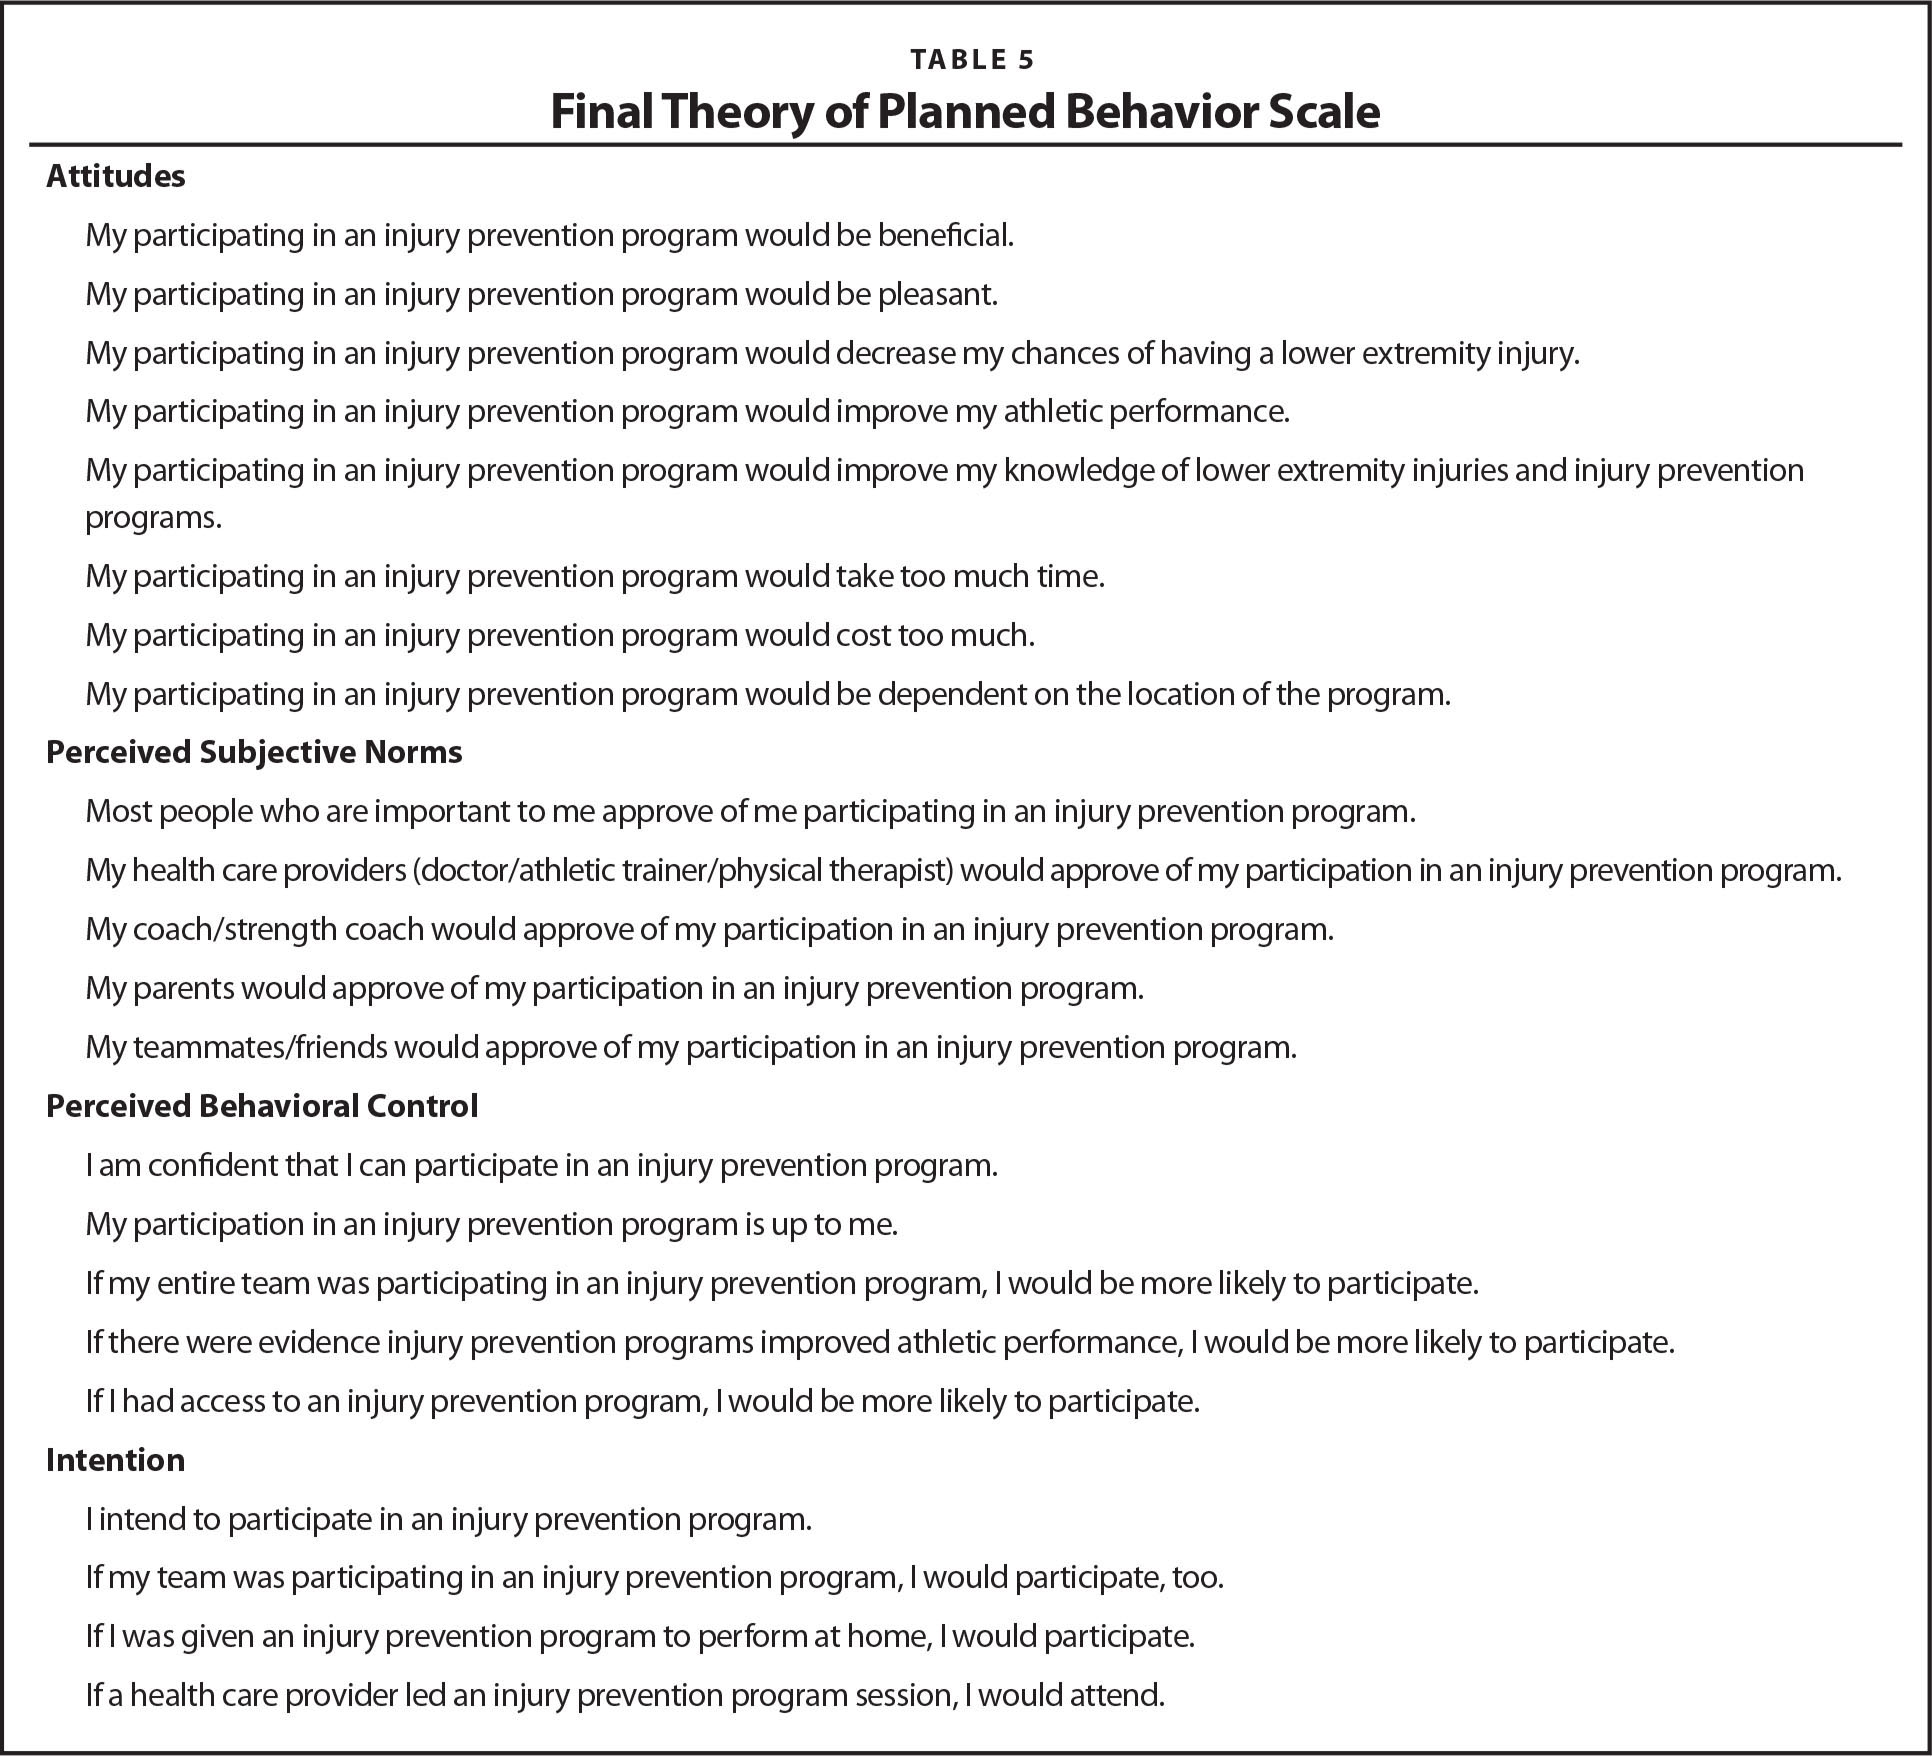 Final Theory of Planned Behavior Scale